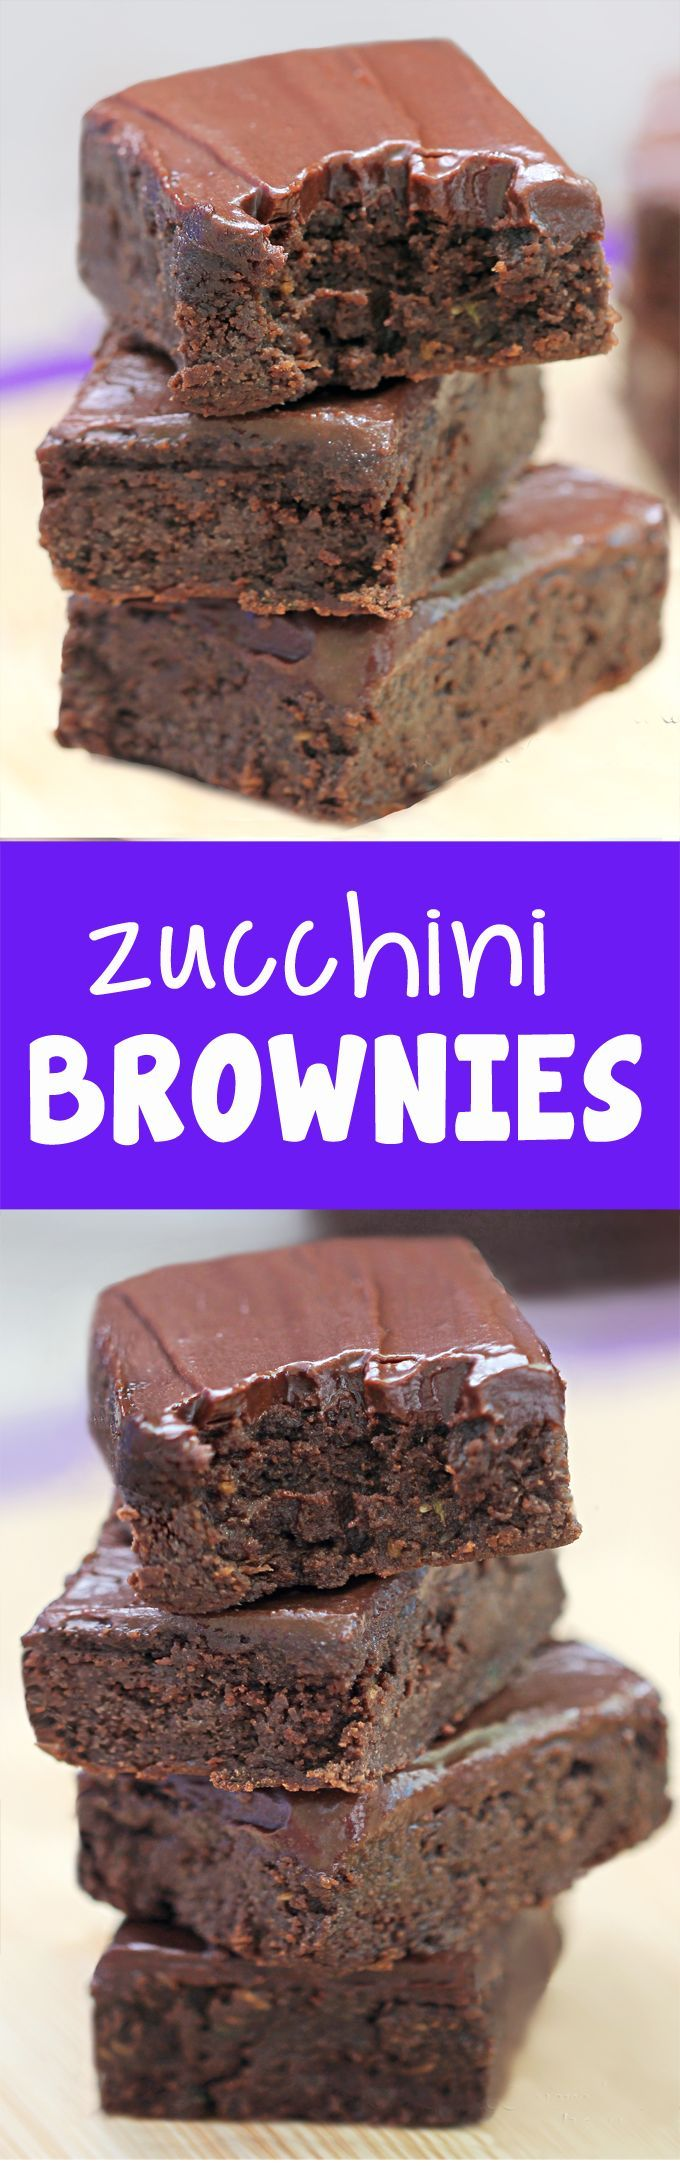 Low carb rich, chocolatey, moist, fudgey brownies from @Chocolate Covered Katie with a secret ingredient – zucchini! The recipe is to die for! chocolatecoveredk...